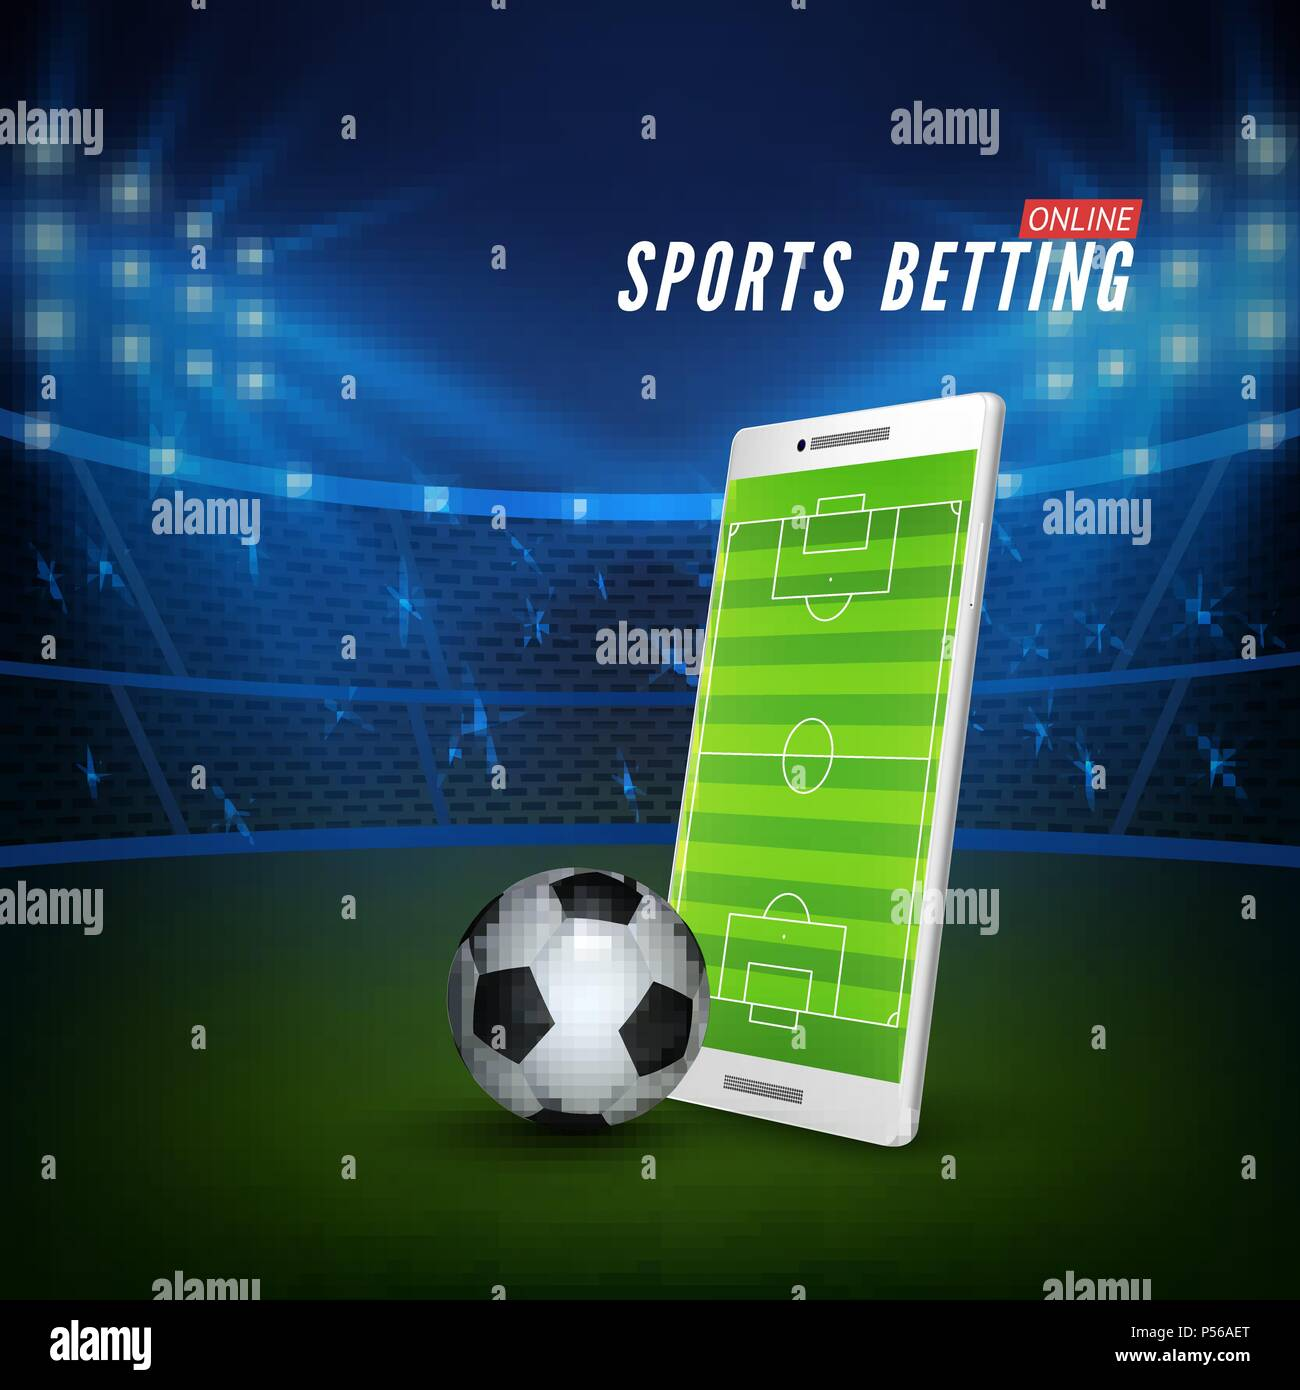 sports betting online web banner template smartphone with football field on screen and soccer ball and football stadium on background vector illustr stock vector image art alamy https www alamy com sports betting online web banner template smartphone with football field on screen and soccer ball and football stadium on background vector illustr image209737664 html